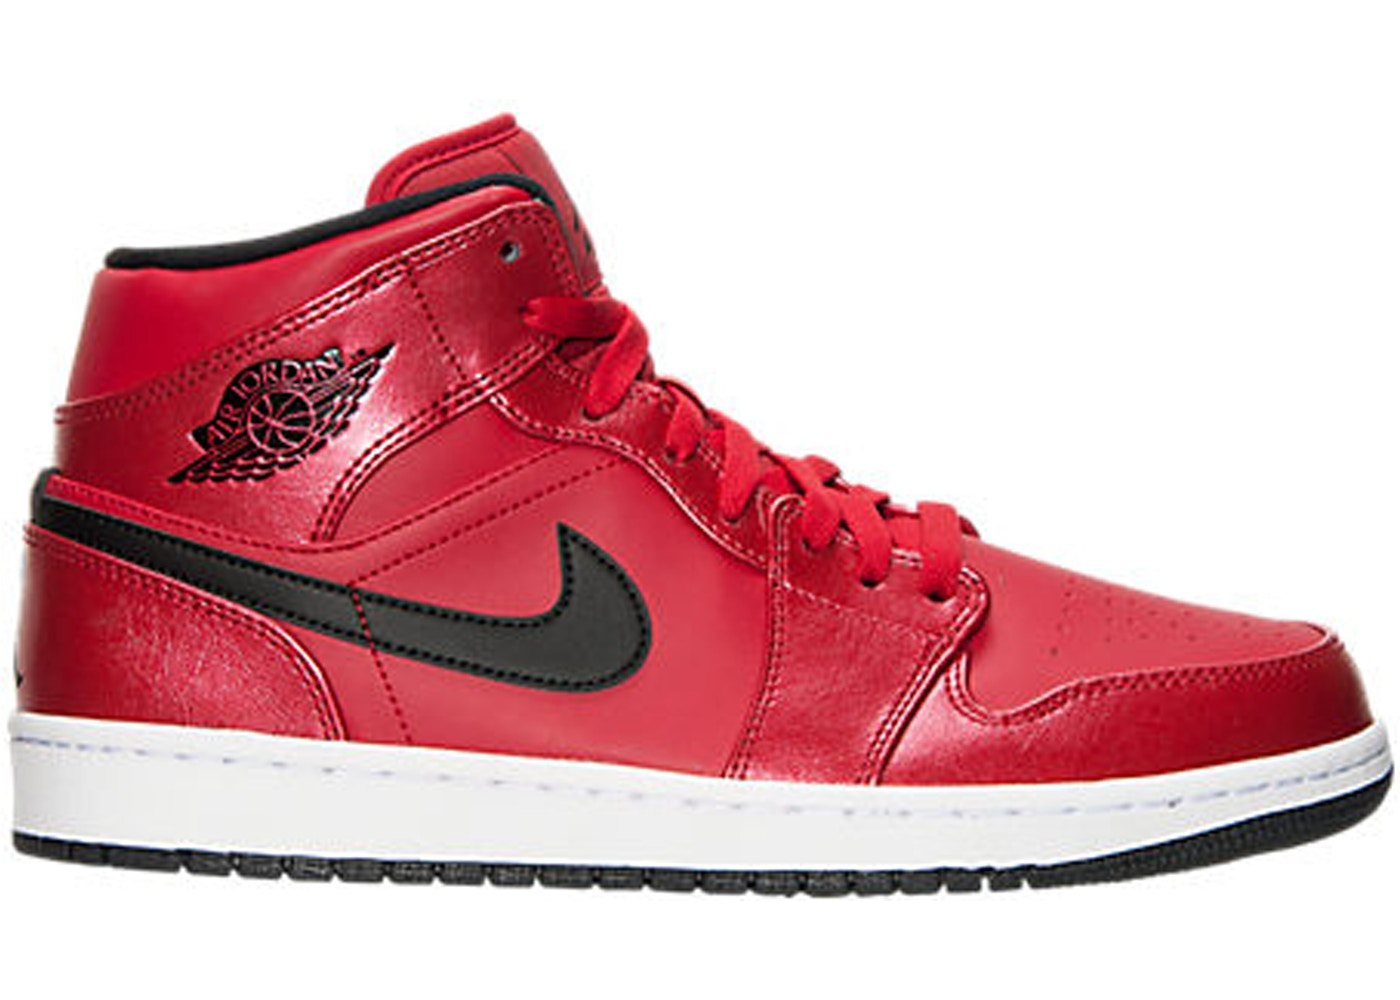 efb82926955f Jordan 1 Mid Gym Red Black Patent - 554724-602